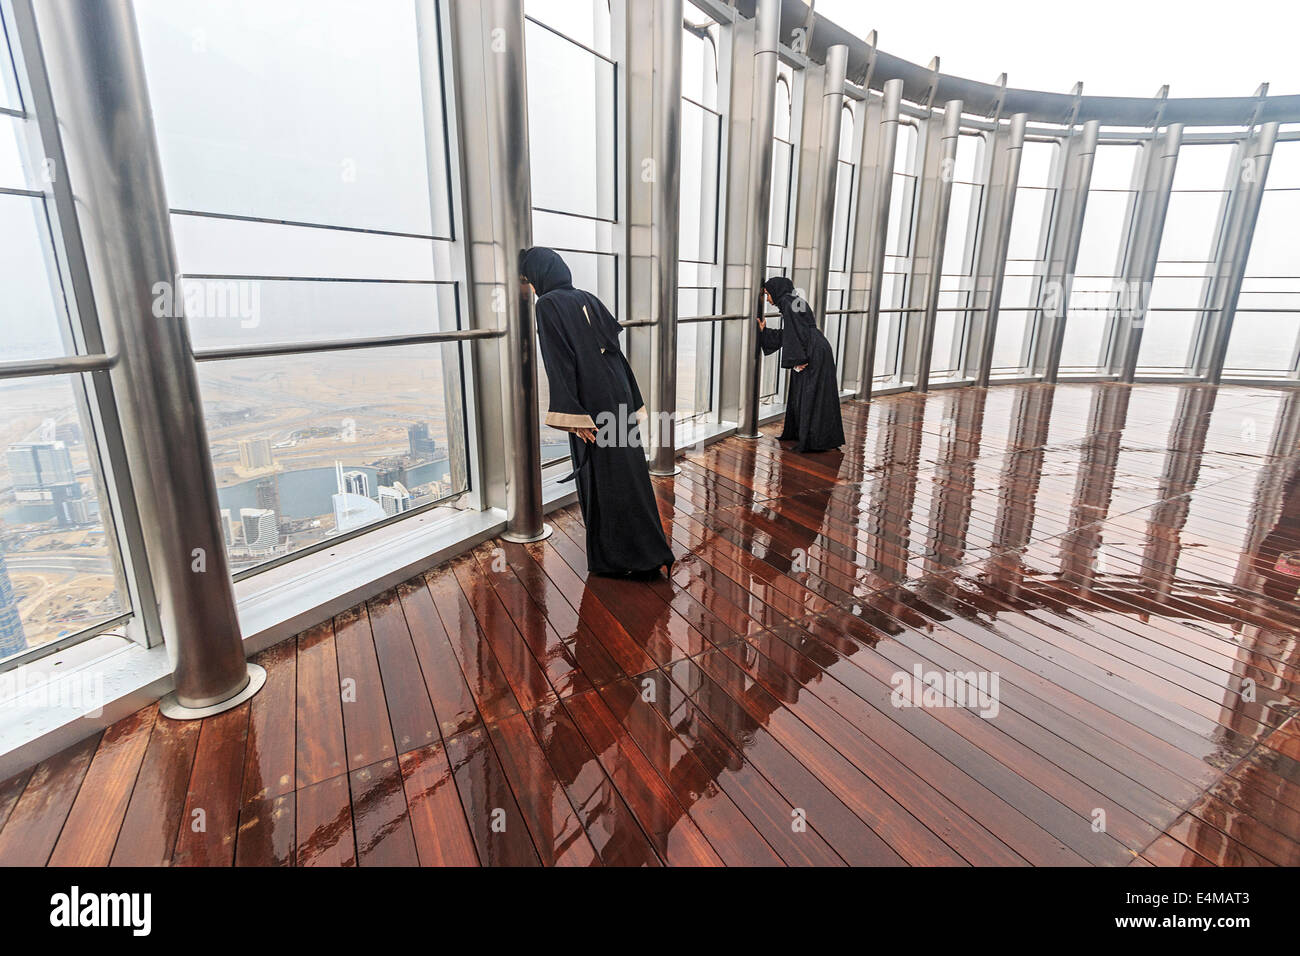 Local Muslim women wearing traditional burka robes have fun posing at the observation deck of the Burj Khalifa - Stock Image